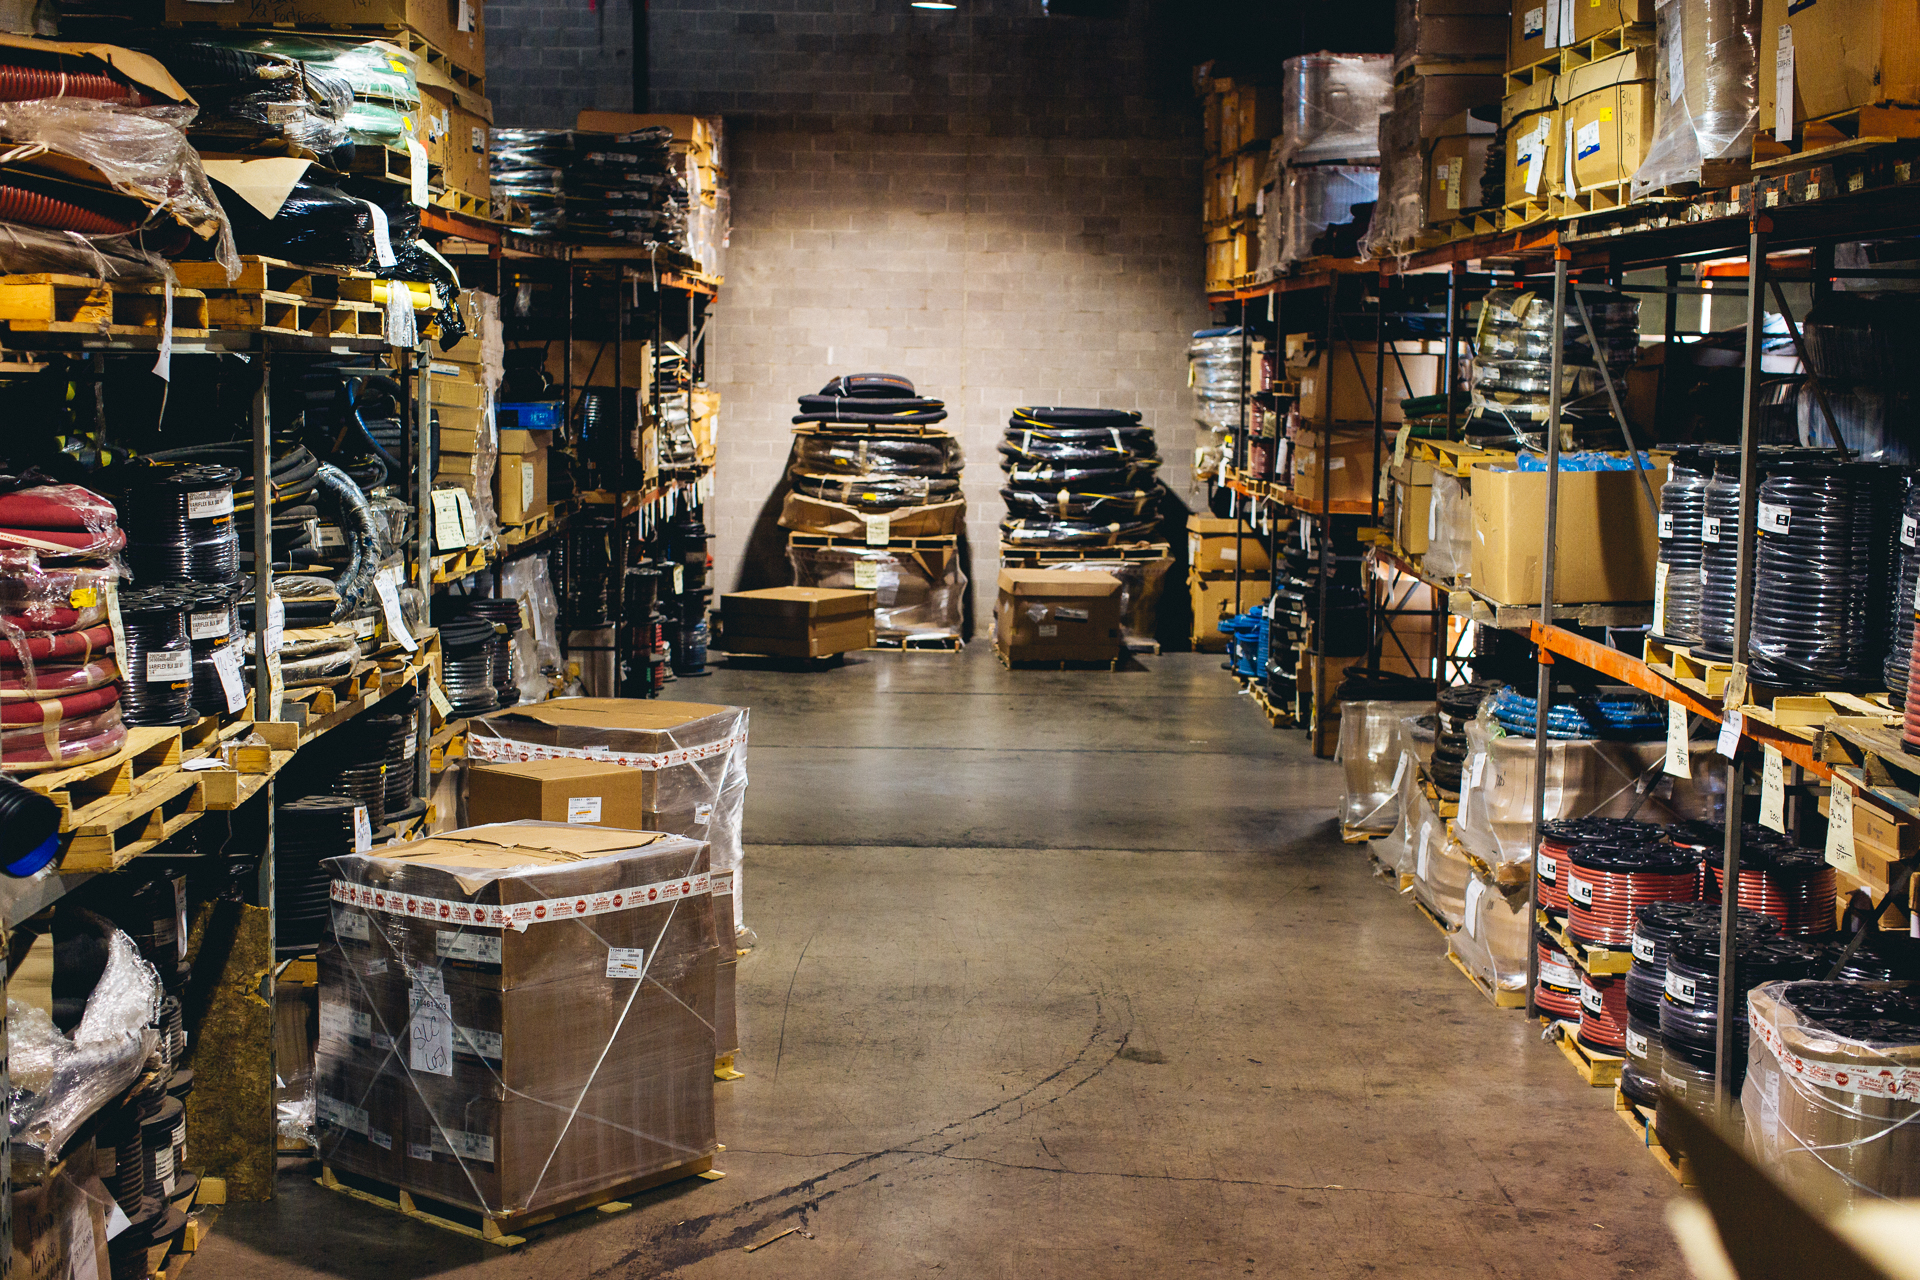 Warehouse stall